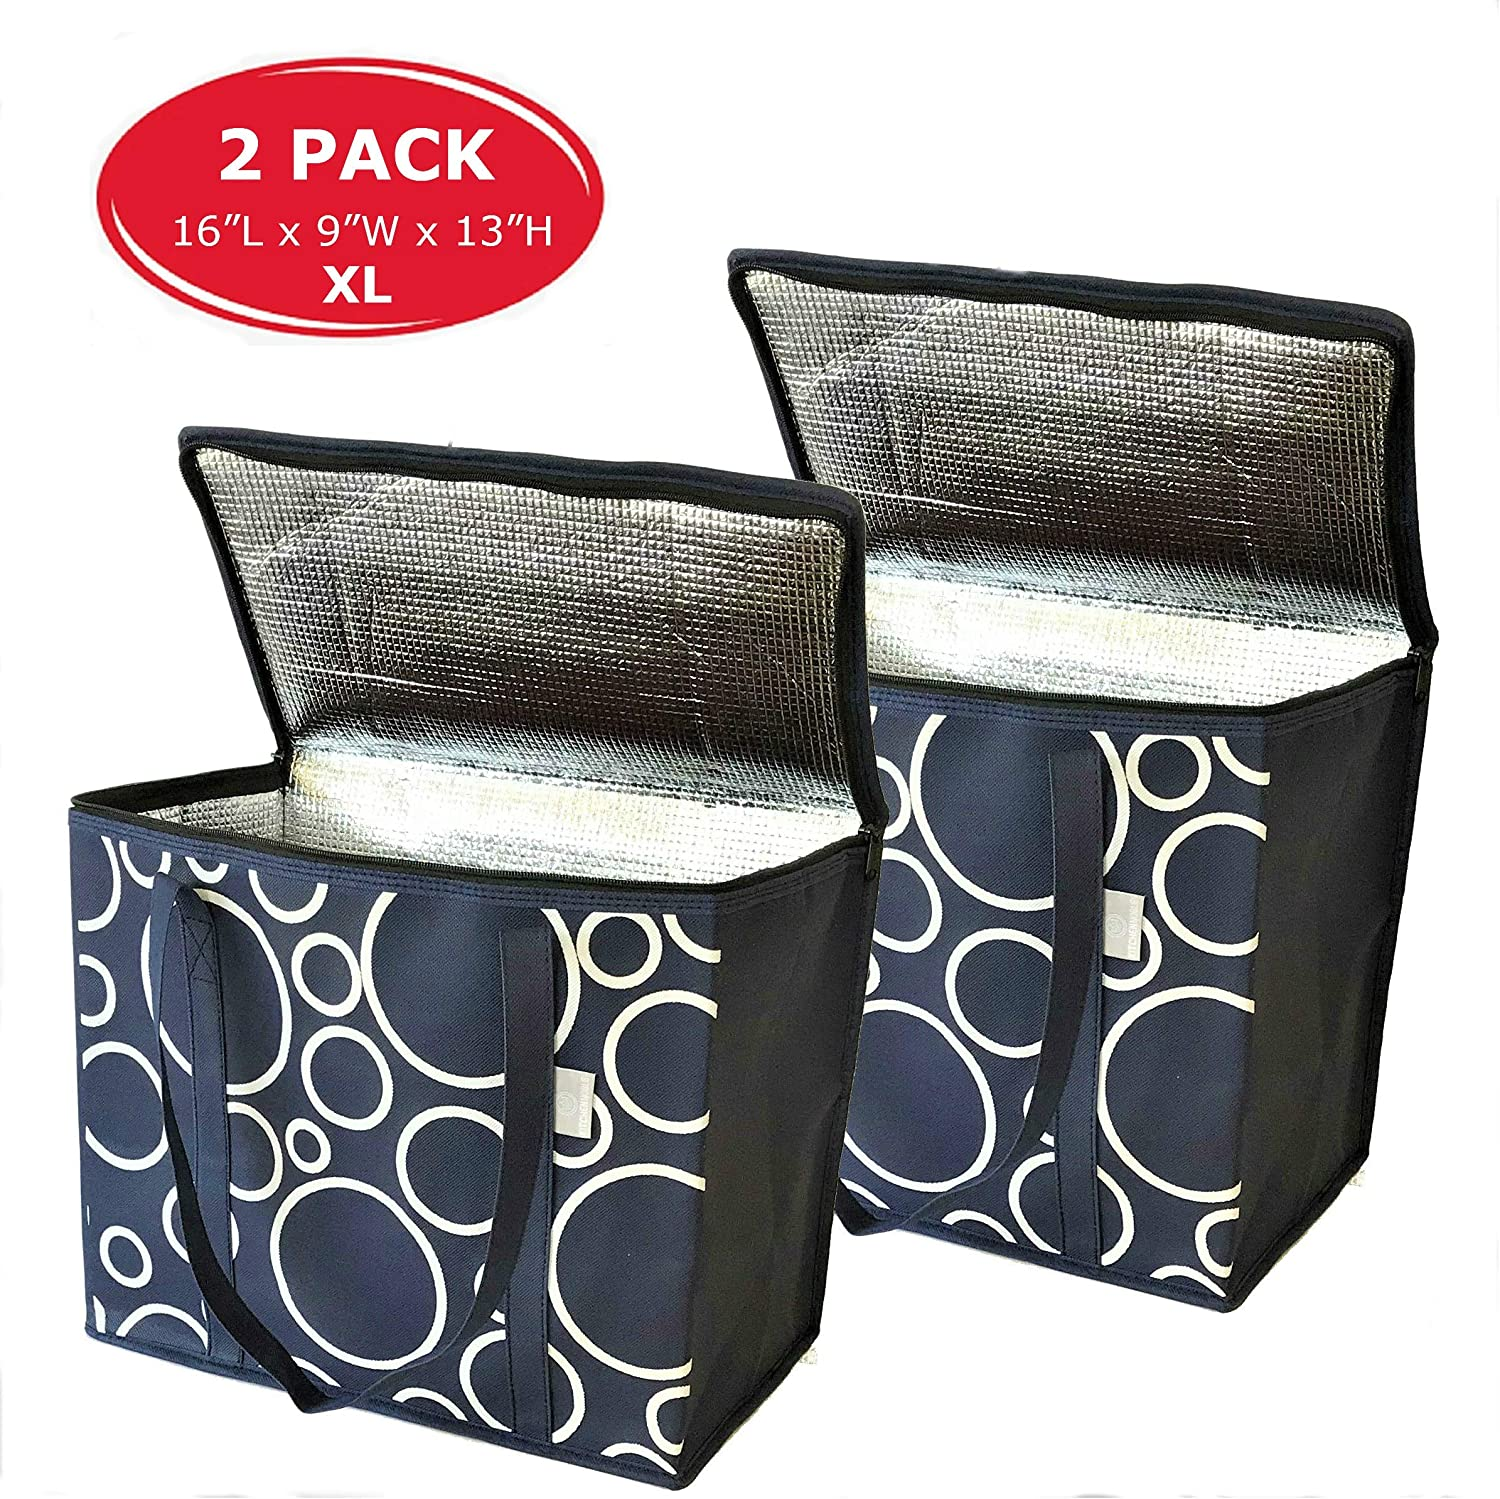 XL Insulated Shopping Bags For Groceries - Insulated Bags For Food Transport - Heavy Duty, Zippered Top, Reinforced Bottom & Handles - Reusable, Foldable For Cold & Hot Food Shopping & Transport- 2 Pk